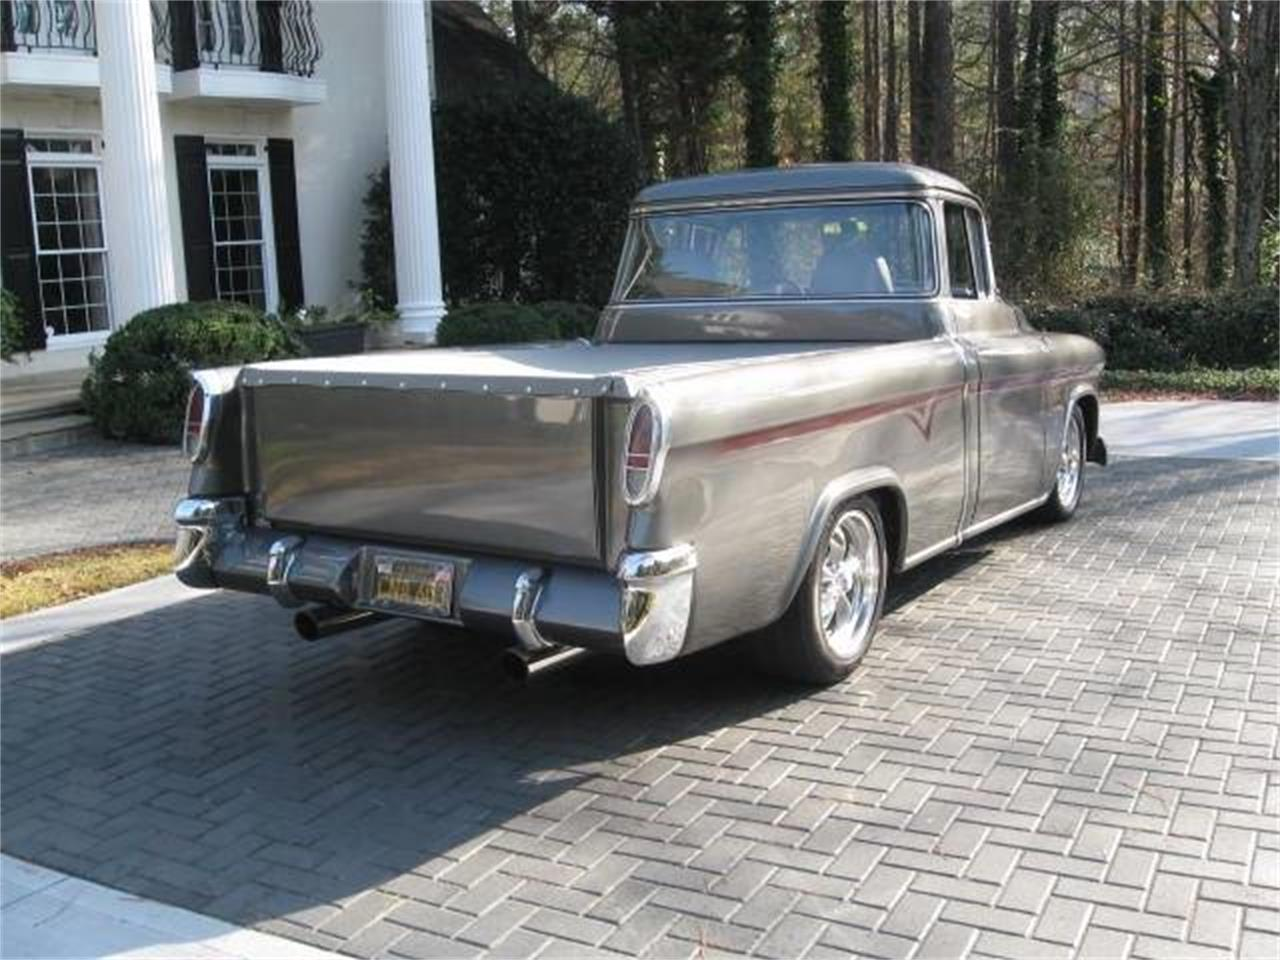 Large Picture of '55 Chevrolet Cameo located in Marietta Georgia - $69,950.00 Offered by Classic Investment LTD - MY6C